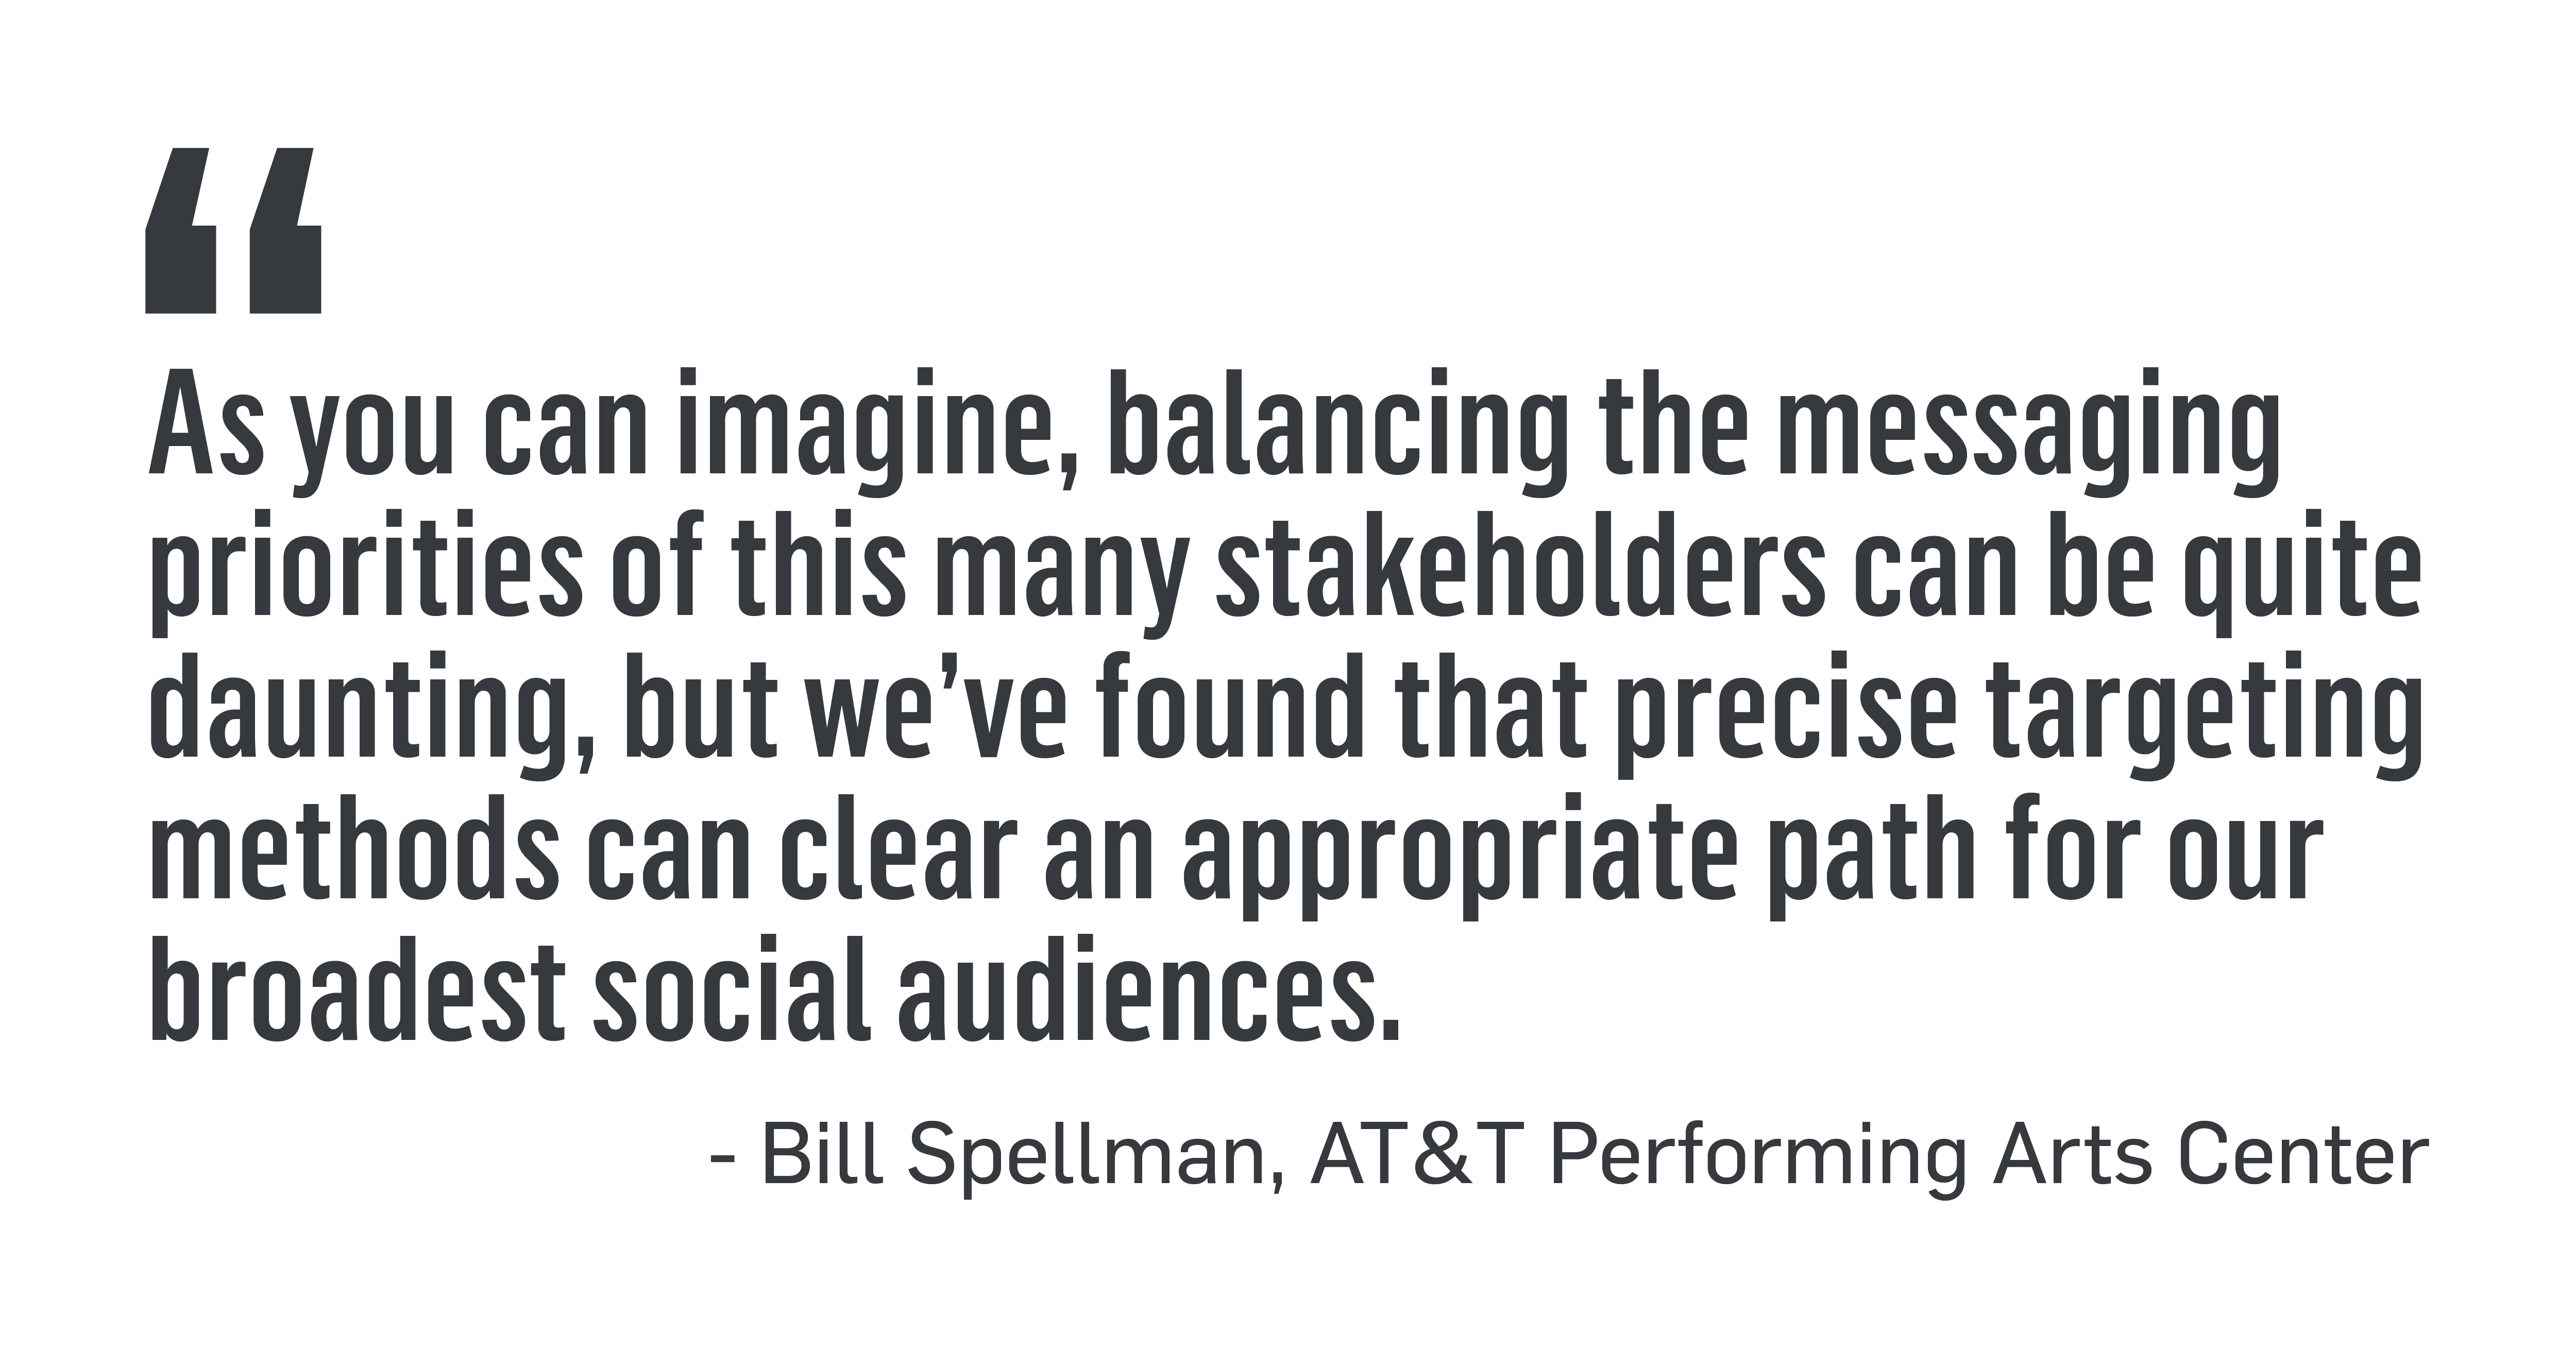 "PULL QUOTE: ""As you can imagine, balancing the messaging priorities of this many stakeholders can be quite daunting, but we've found that precise targeting methods can clear an appropriate path for our broadest social audiences."" - Bill Spellman, AT&T Performing Arts Center"